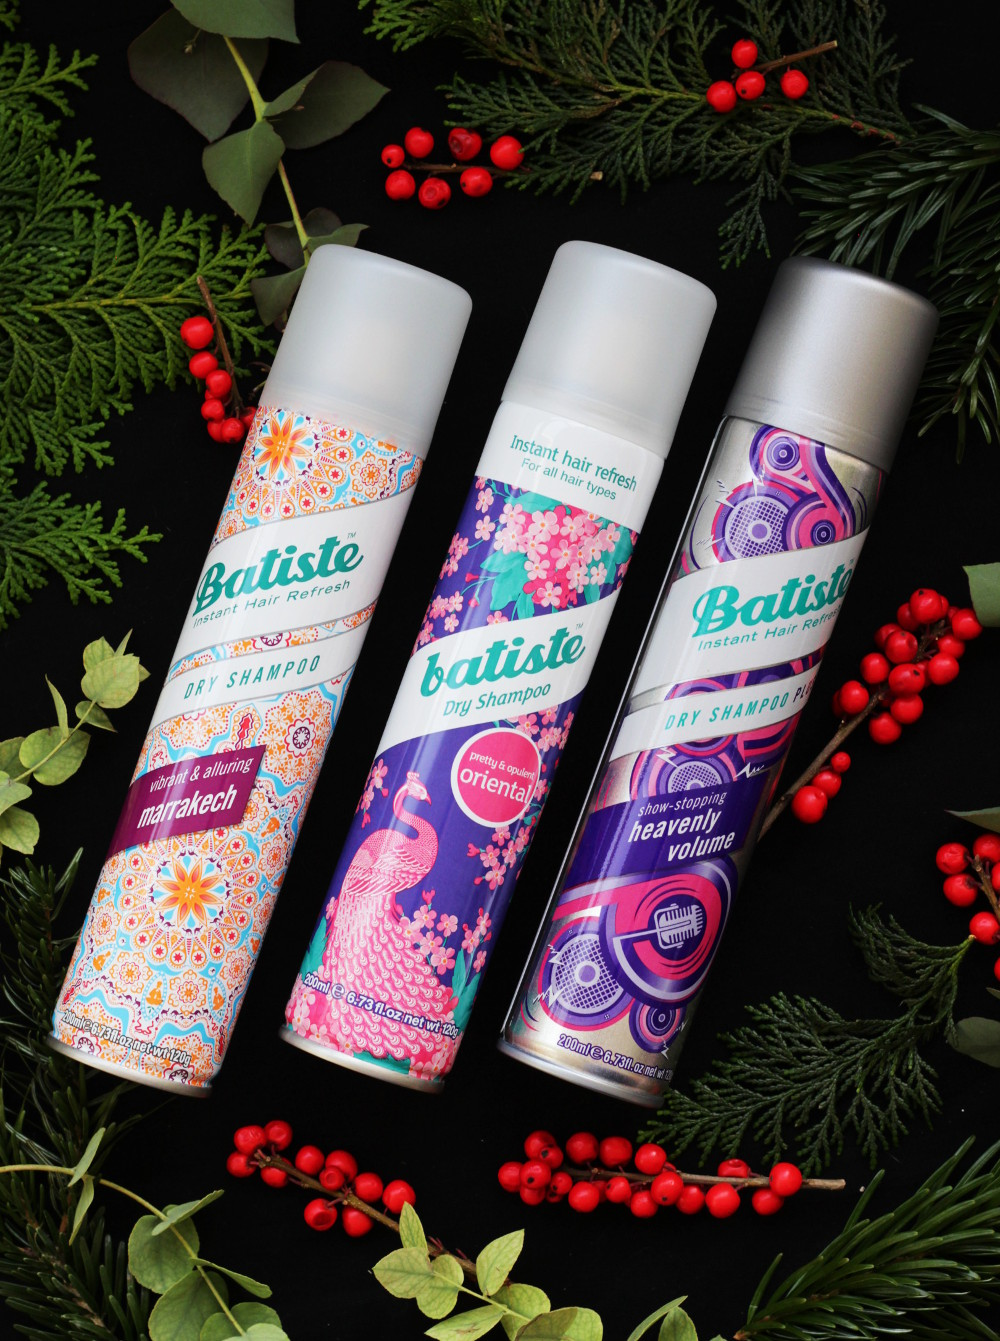 Beauty Adventskalender batiste